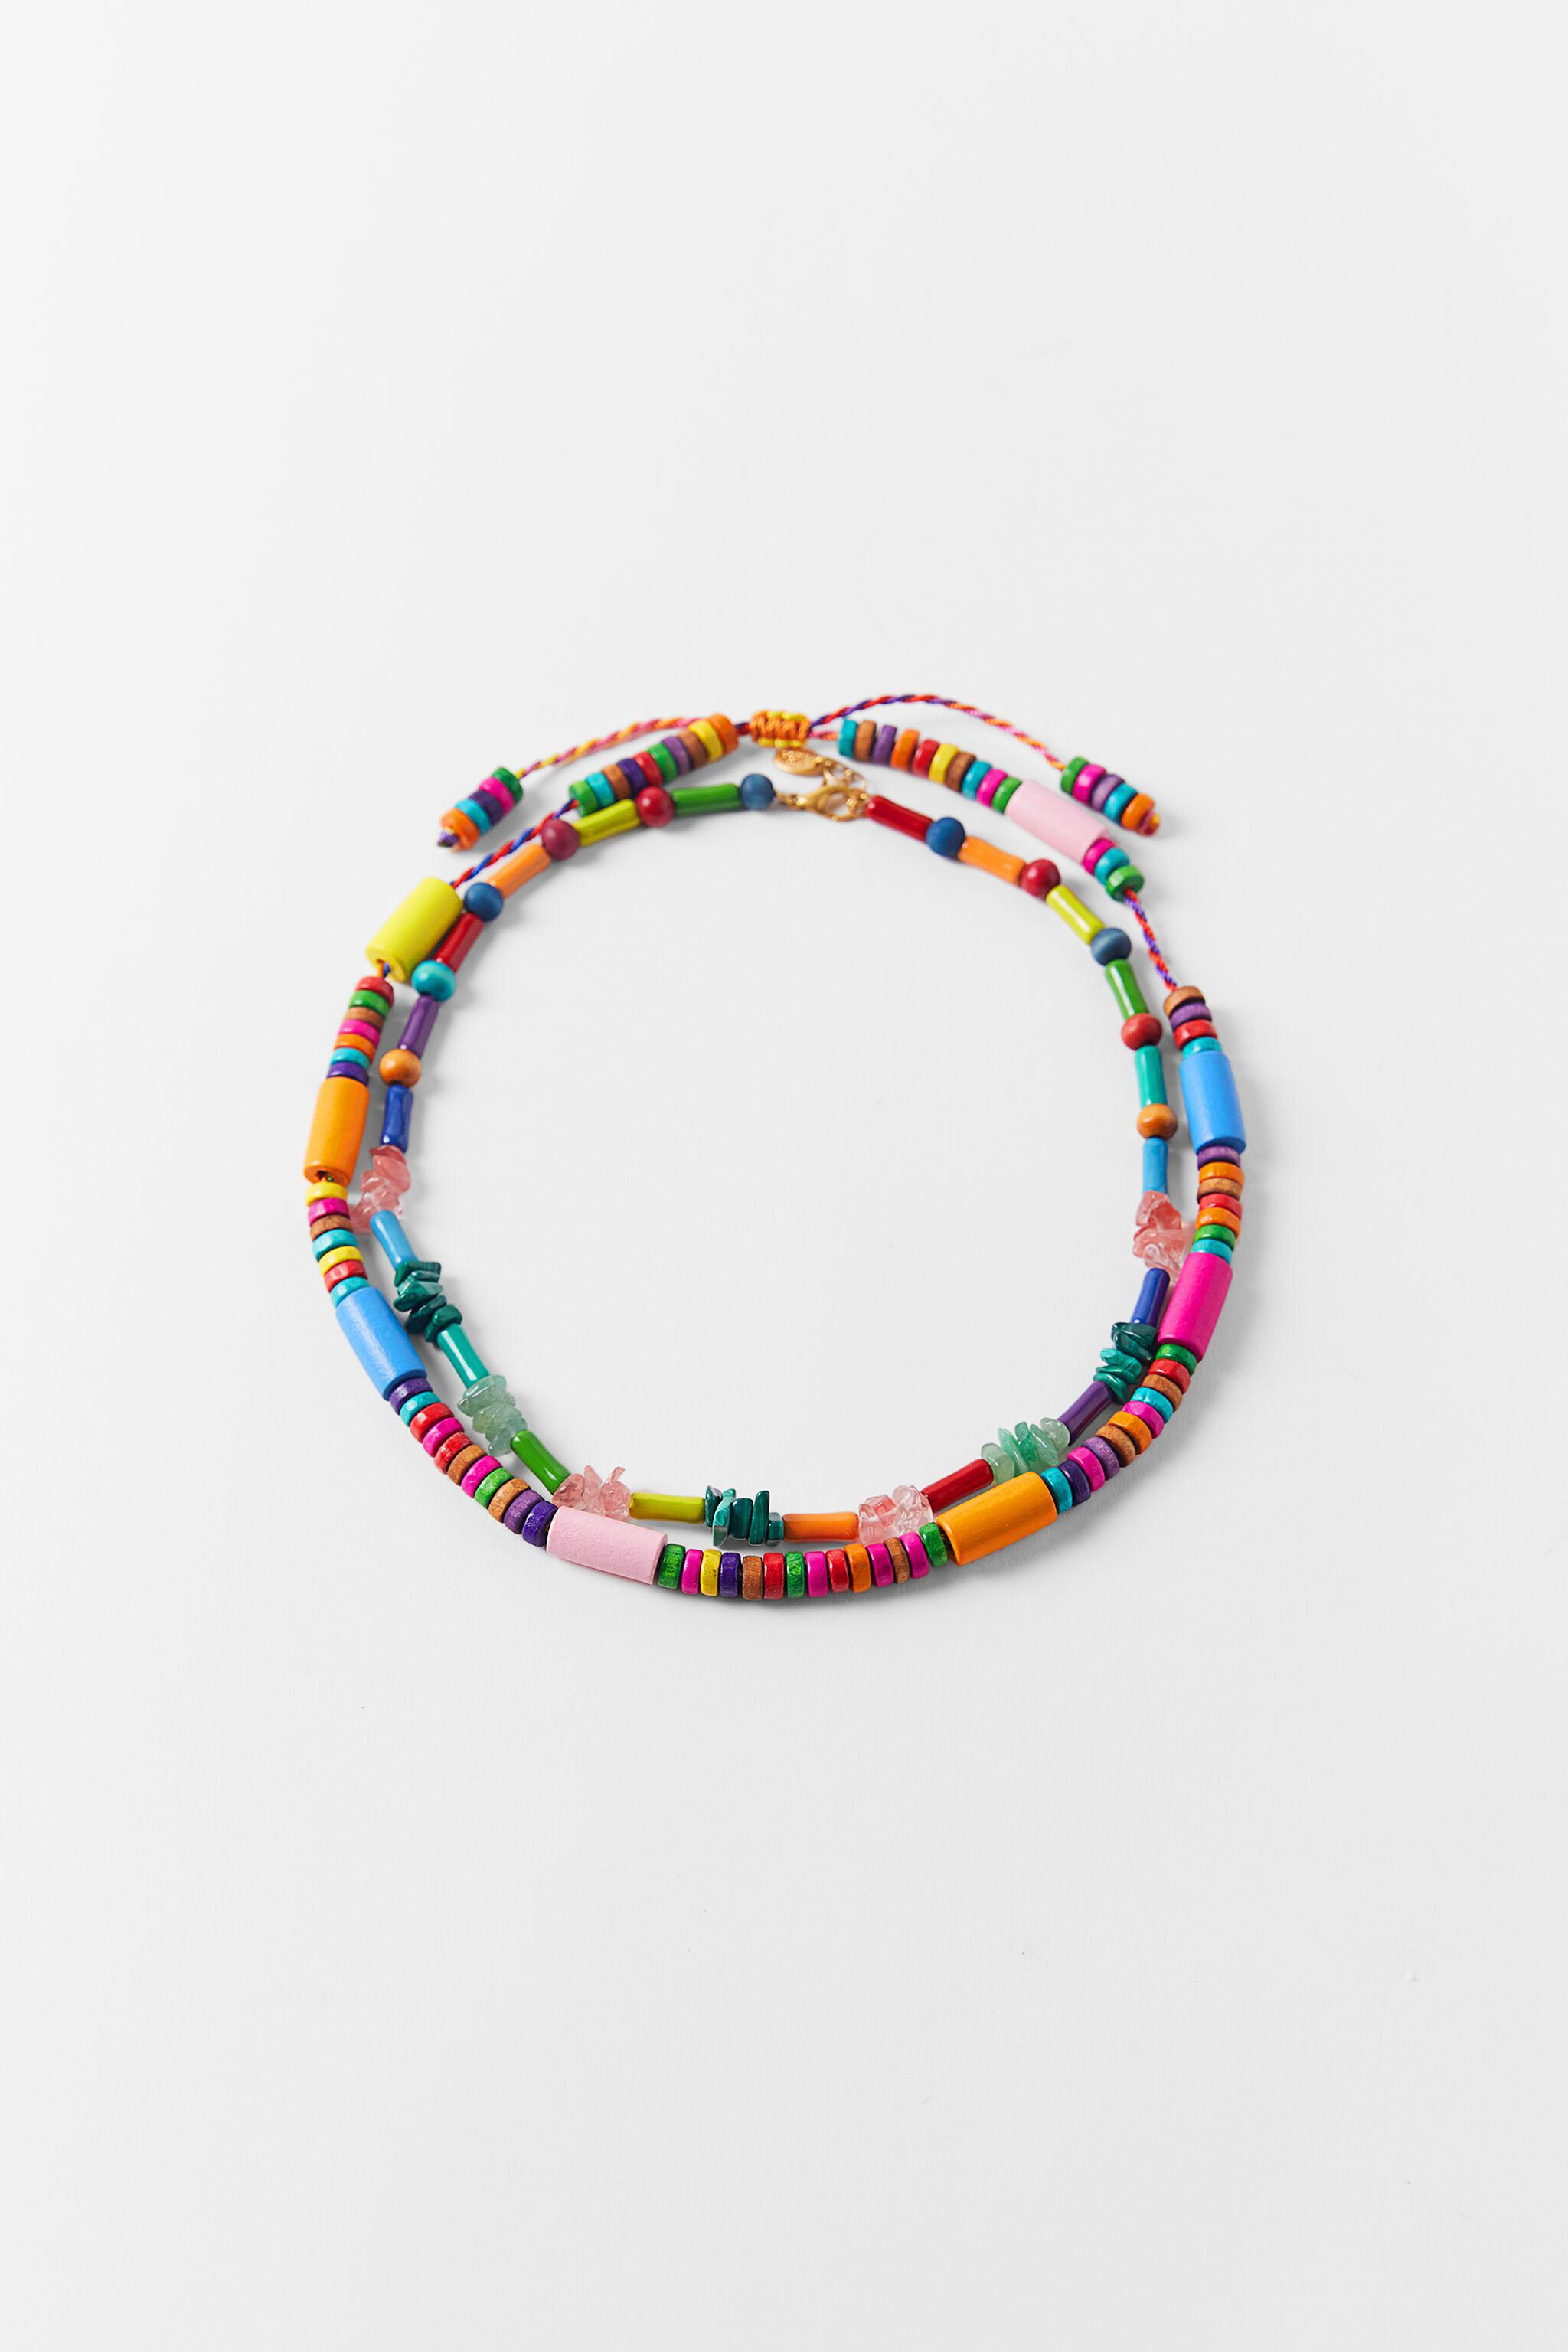 PACK OF MULTI-COLORED NECKLACES